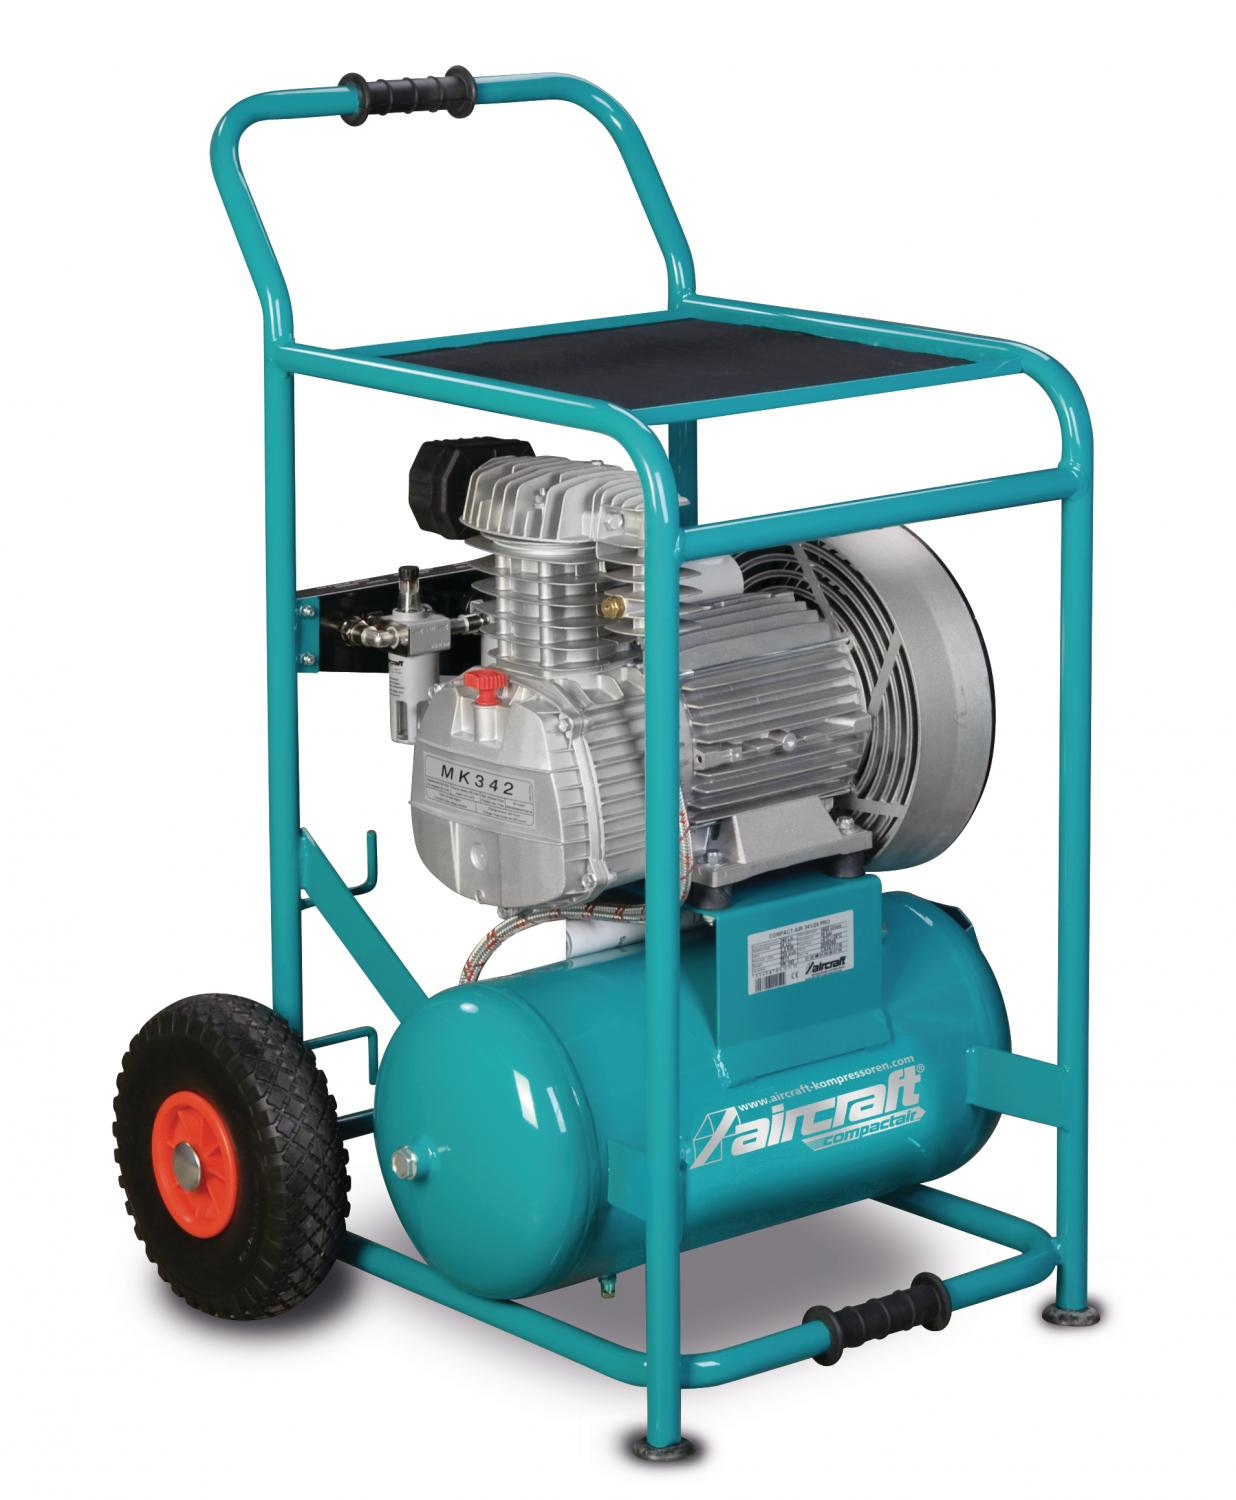 COMPACT-AIR 341/24 PRO